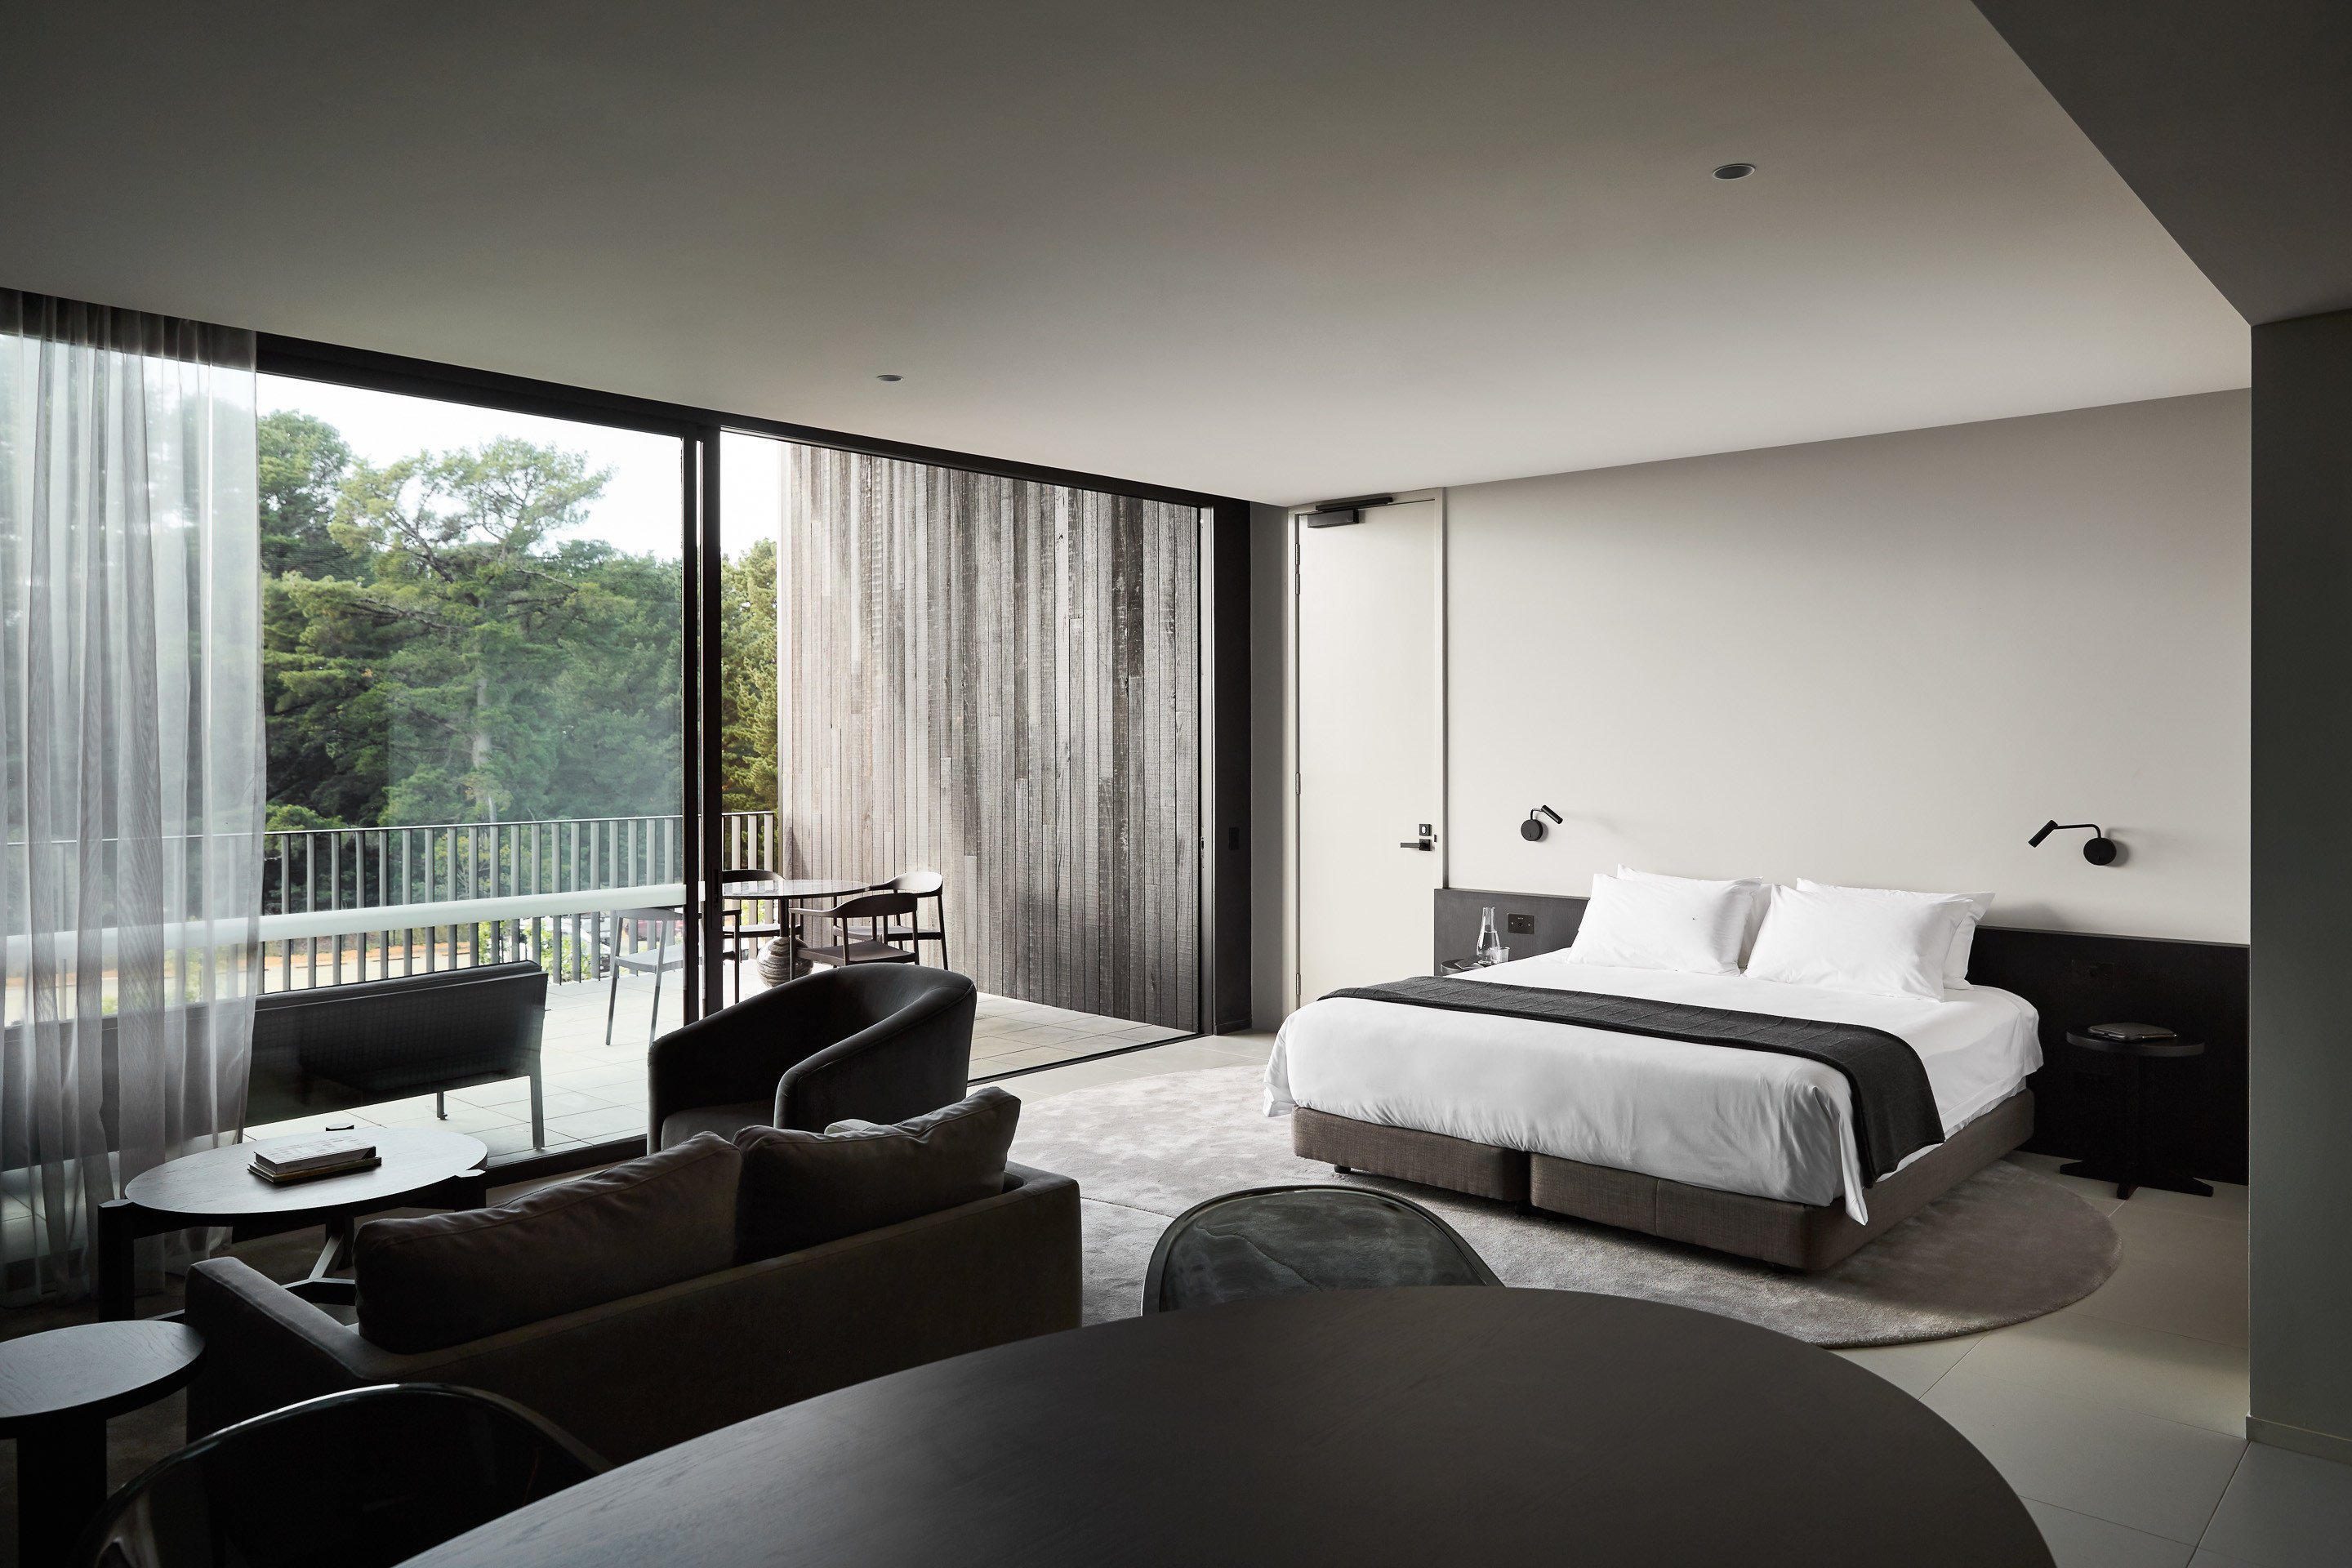 Food + Drink Hotels Trip Ideas Winter indoor sofa wall window ceiling bed room floor hotel Bedroom interior design property Architecture house real estate Suite living room daylighting condominium interior designer furniture pillow penthouse apartment apartment Modern decorated